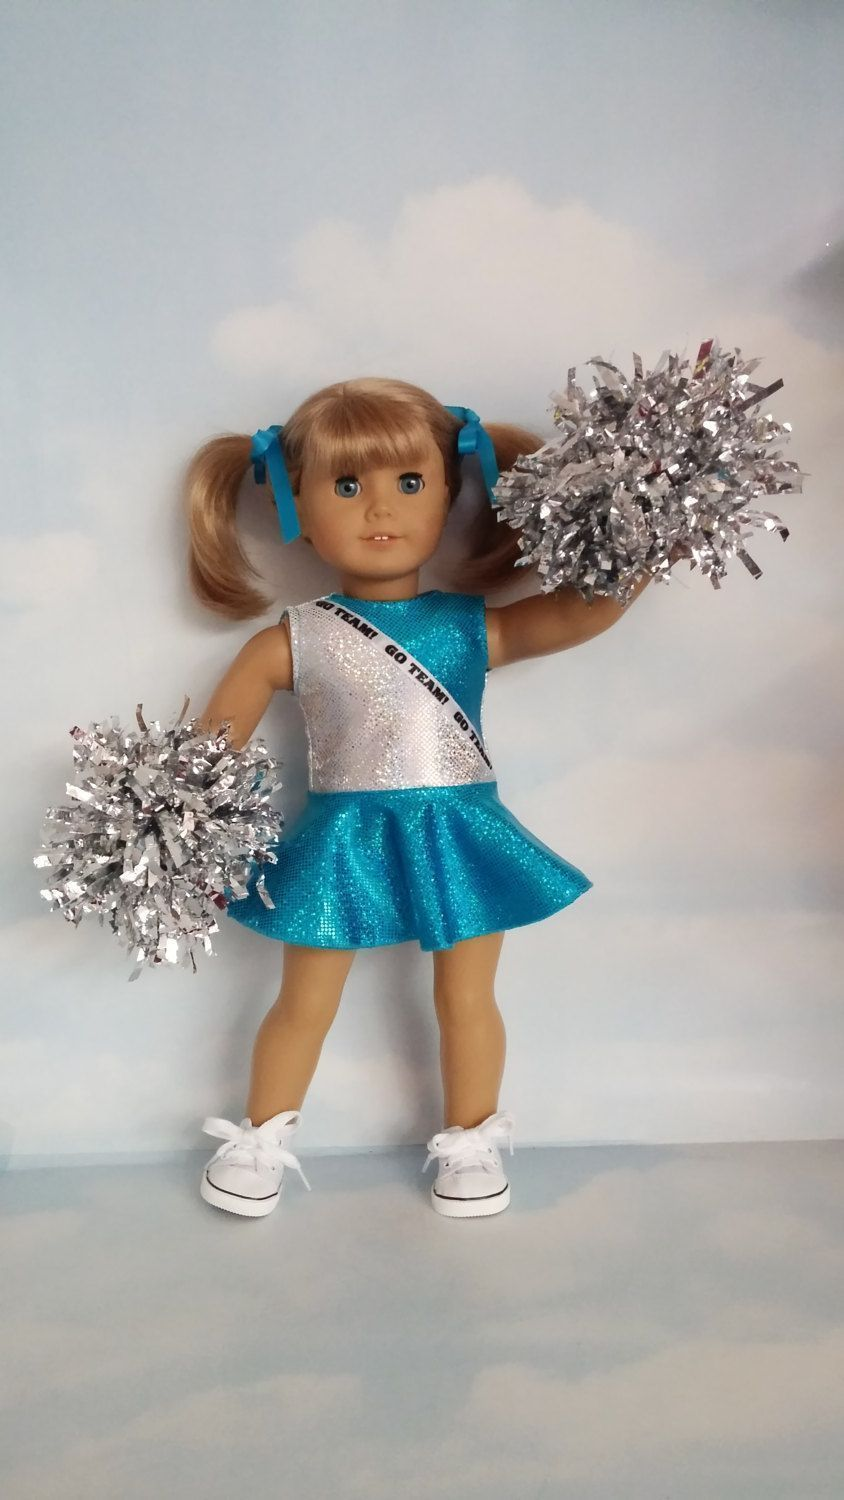 Last One! - 18 inch doll clothes - Aqua and Silver Cheerleader Outfit Handmade to fit the American girl doll #18inchcheerleaderclothes 18 inch doll clothes -  Aqua and Silver Cheerleader Outfit  Handmade to fit the American girl doll by susiestitchit on Etsy #18inchcheerleaderclothes Last One! - 18 inch doll clothes - Aqua and Silver Cheerleader Outfit Handmade to fit the American girl doll #18inchcheerleaderclothes 18 inch doll clothes -  Aqua and Silver Cheerleader Outfit  Handmade to fit the #18inchcheerleaderclothes